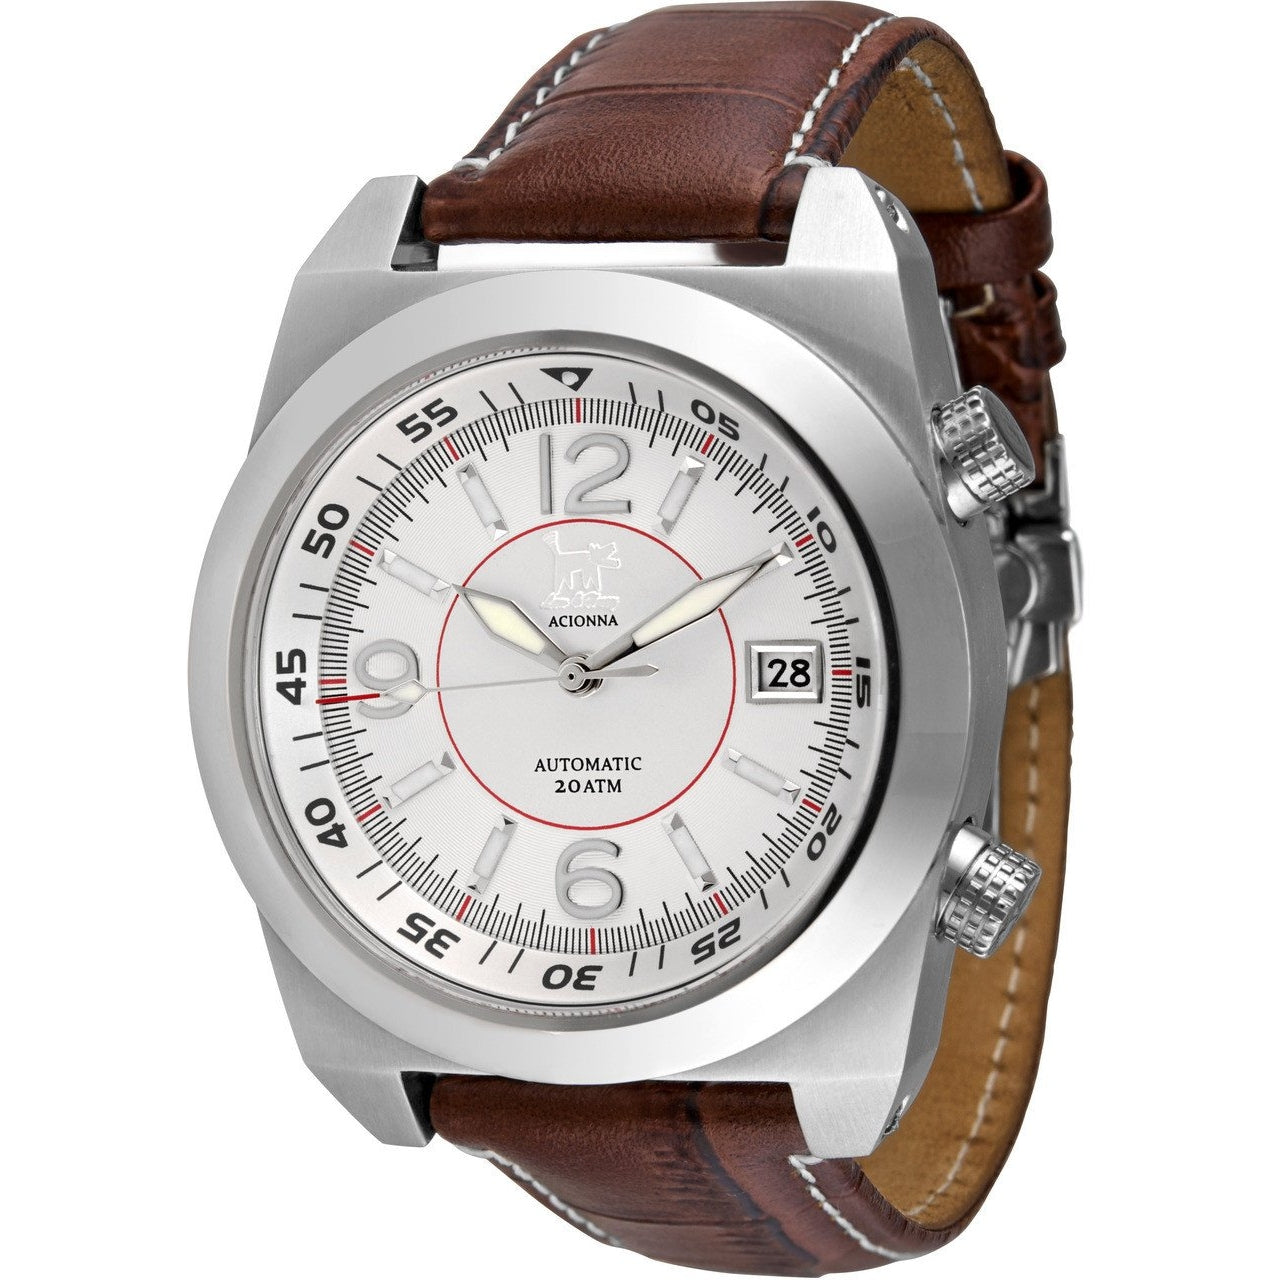 Lew and Huey Acionna Automatic Watch (White & Red) - Watchfinder General - UK suppliers of Russian Vostok Parnis Watches MWC G10  - 2